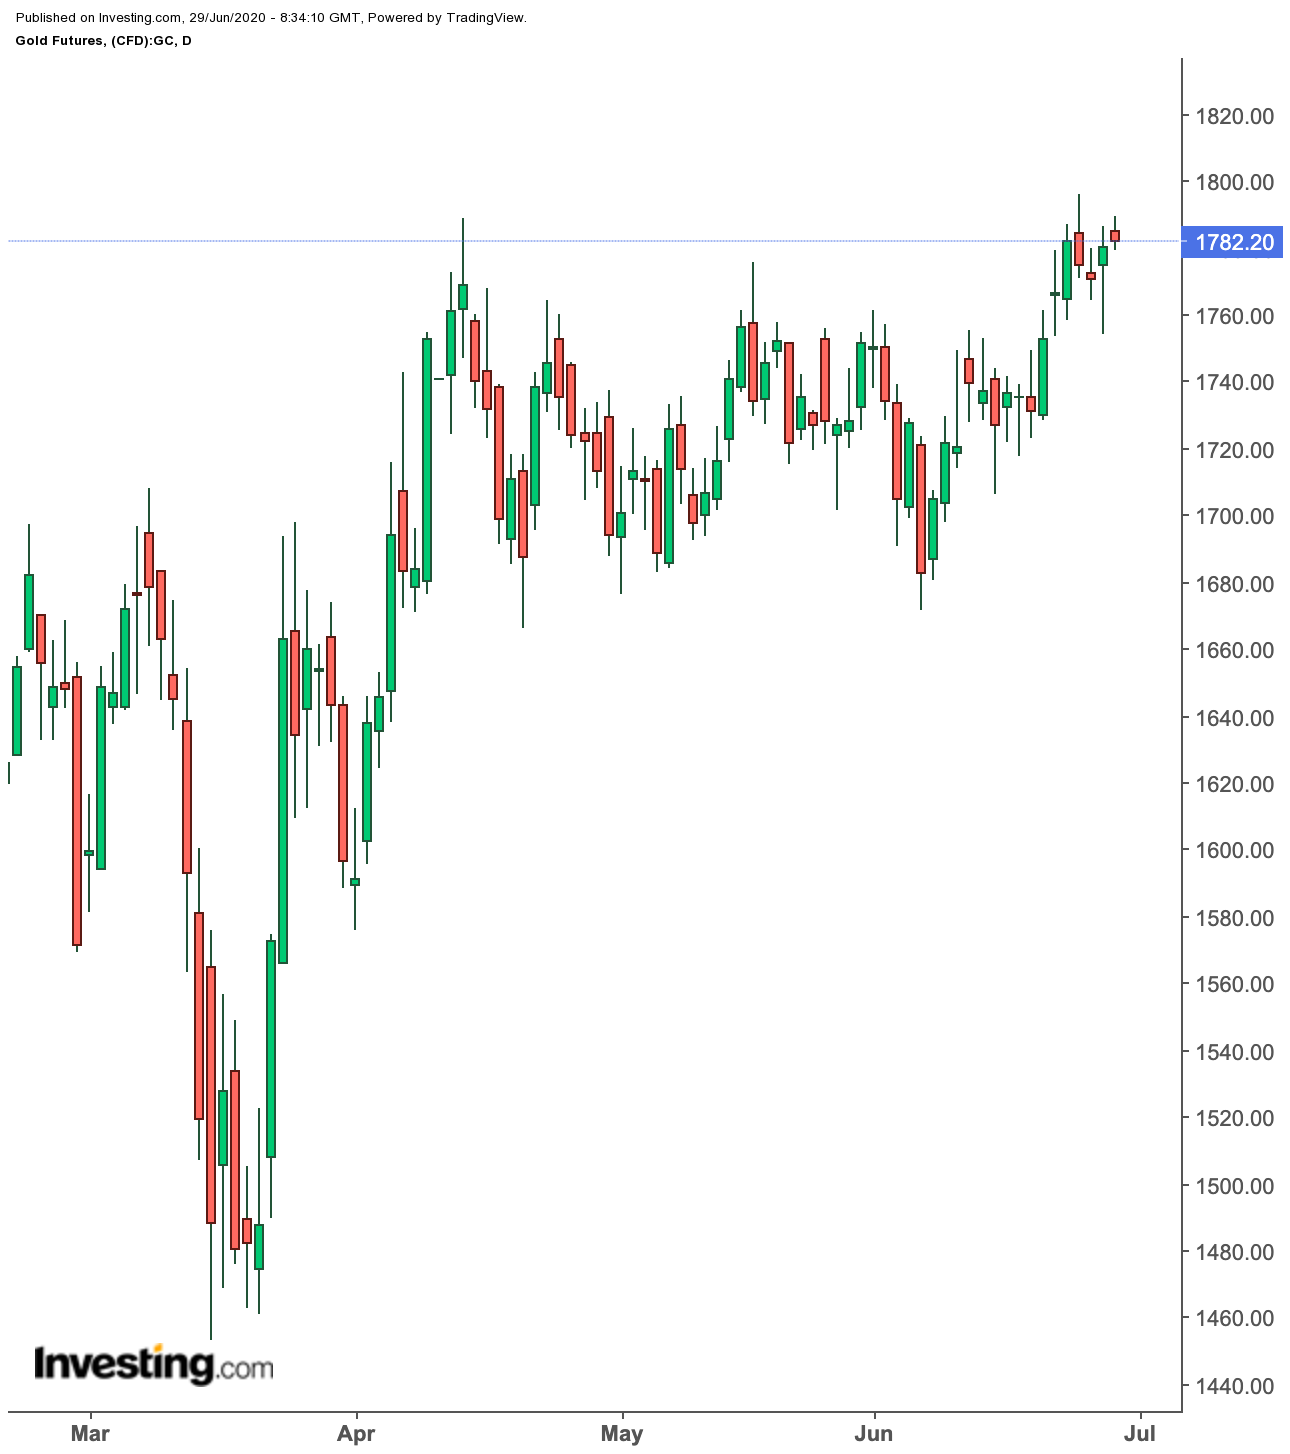 Daily Gold Futures